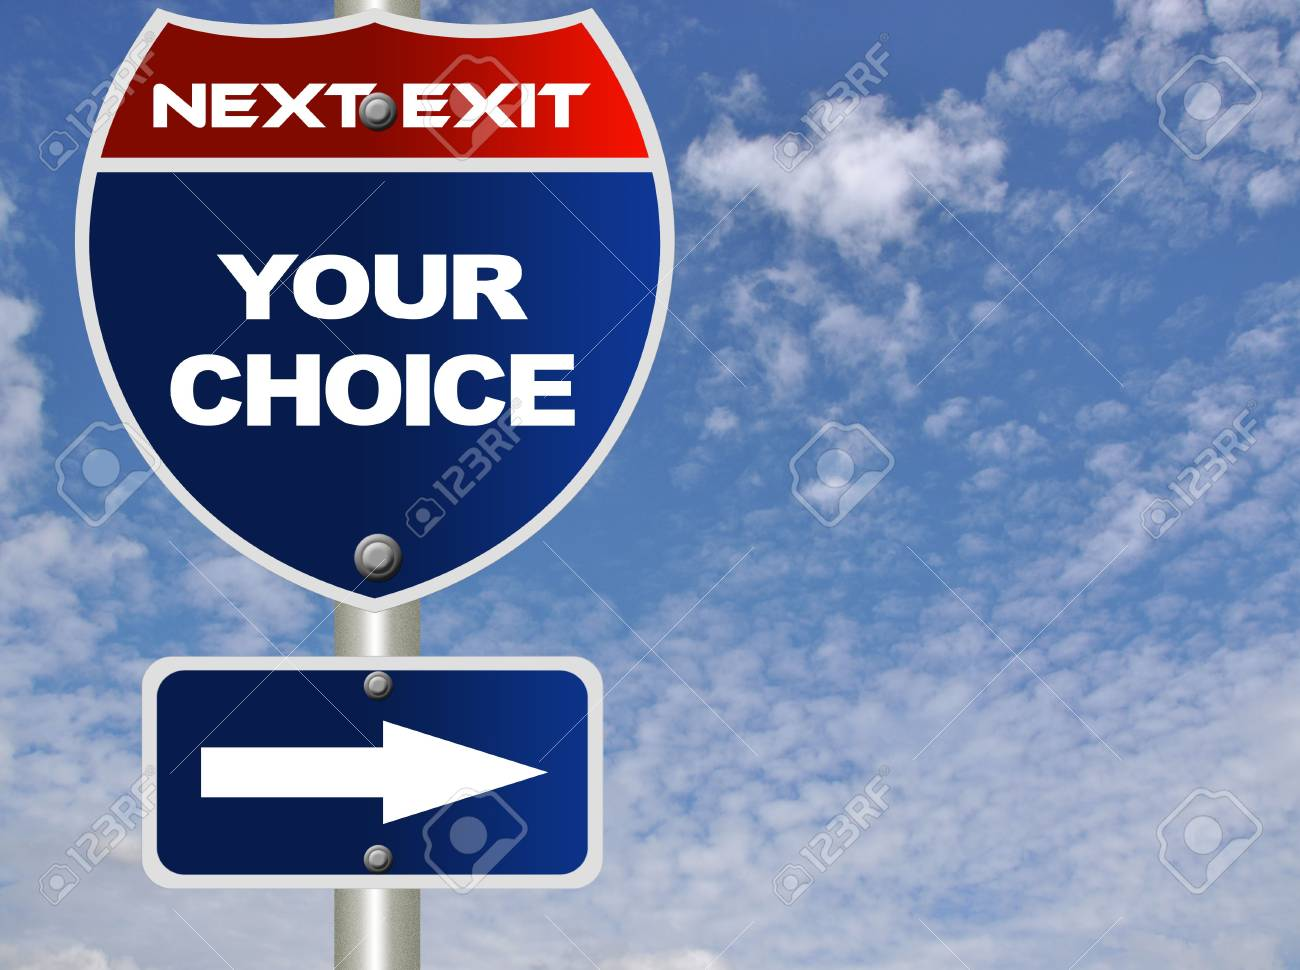 Your choice road sign Stock Photo - 7947525